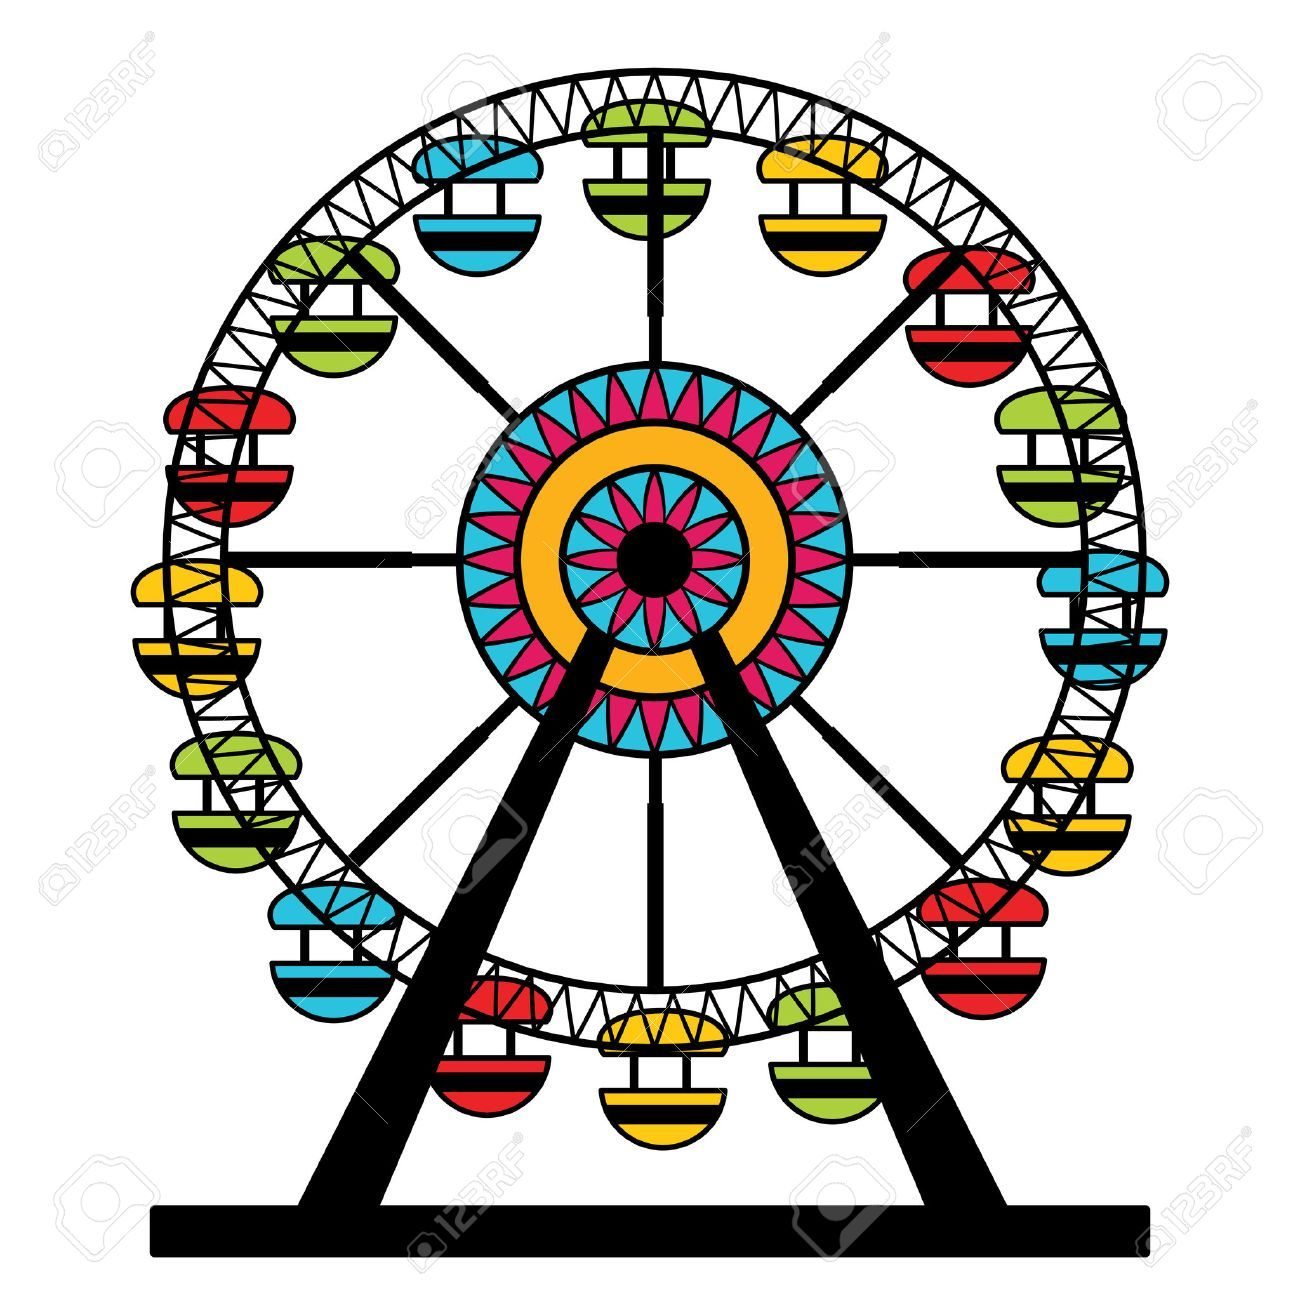 Park and ride clipart png black and white stock Amusement park ride clipart 5 » Clipart Portal png black and white stock